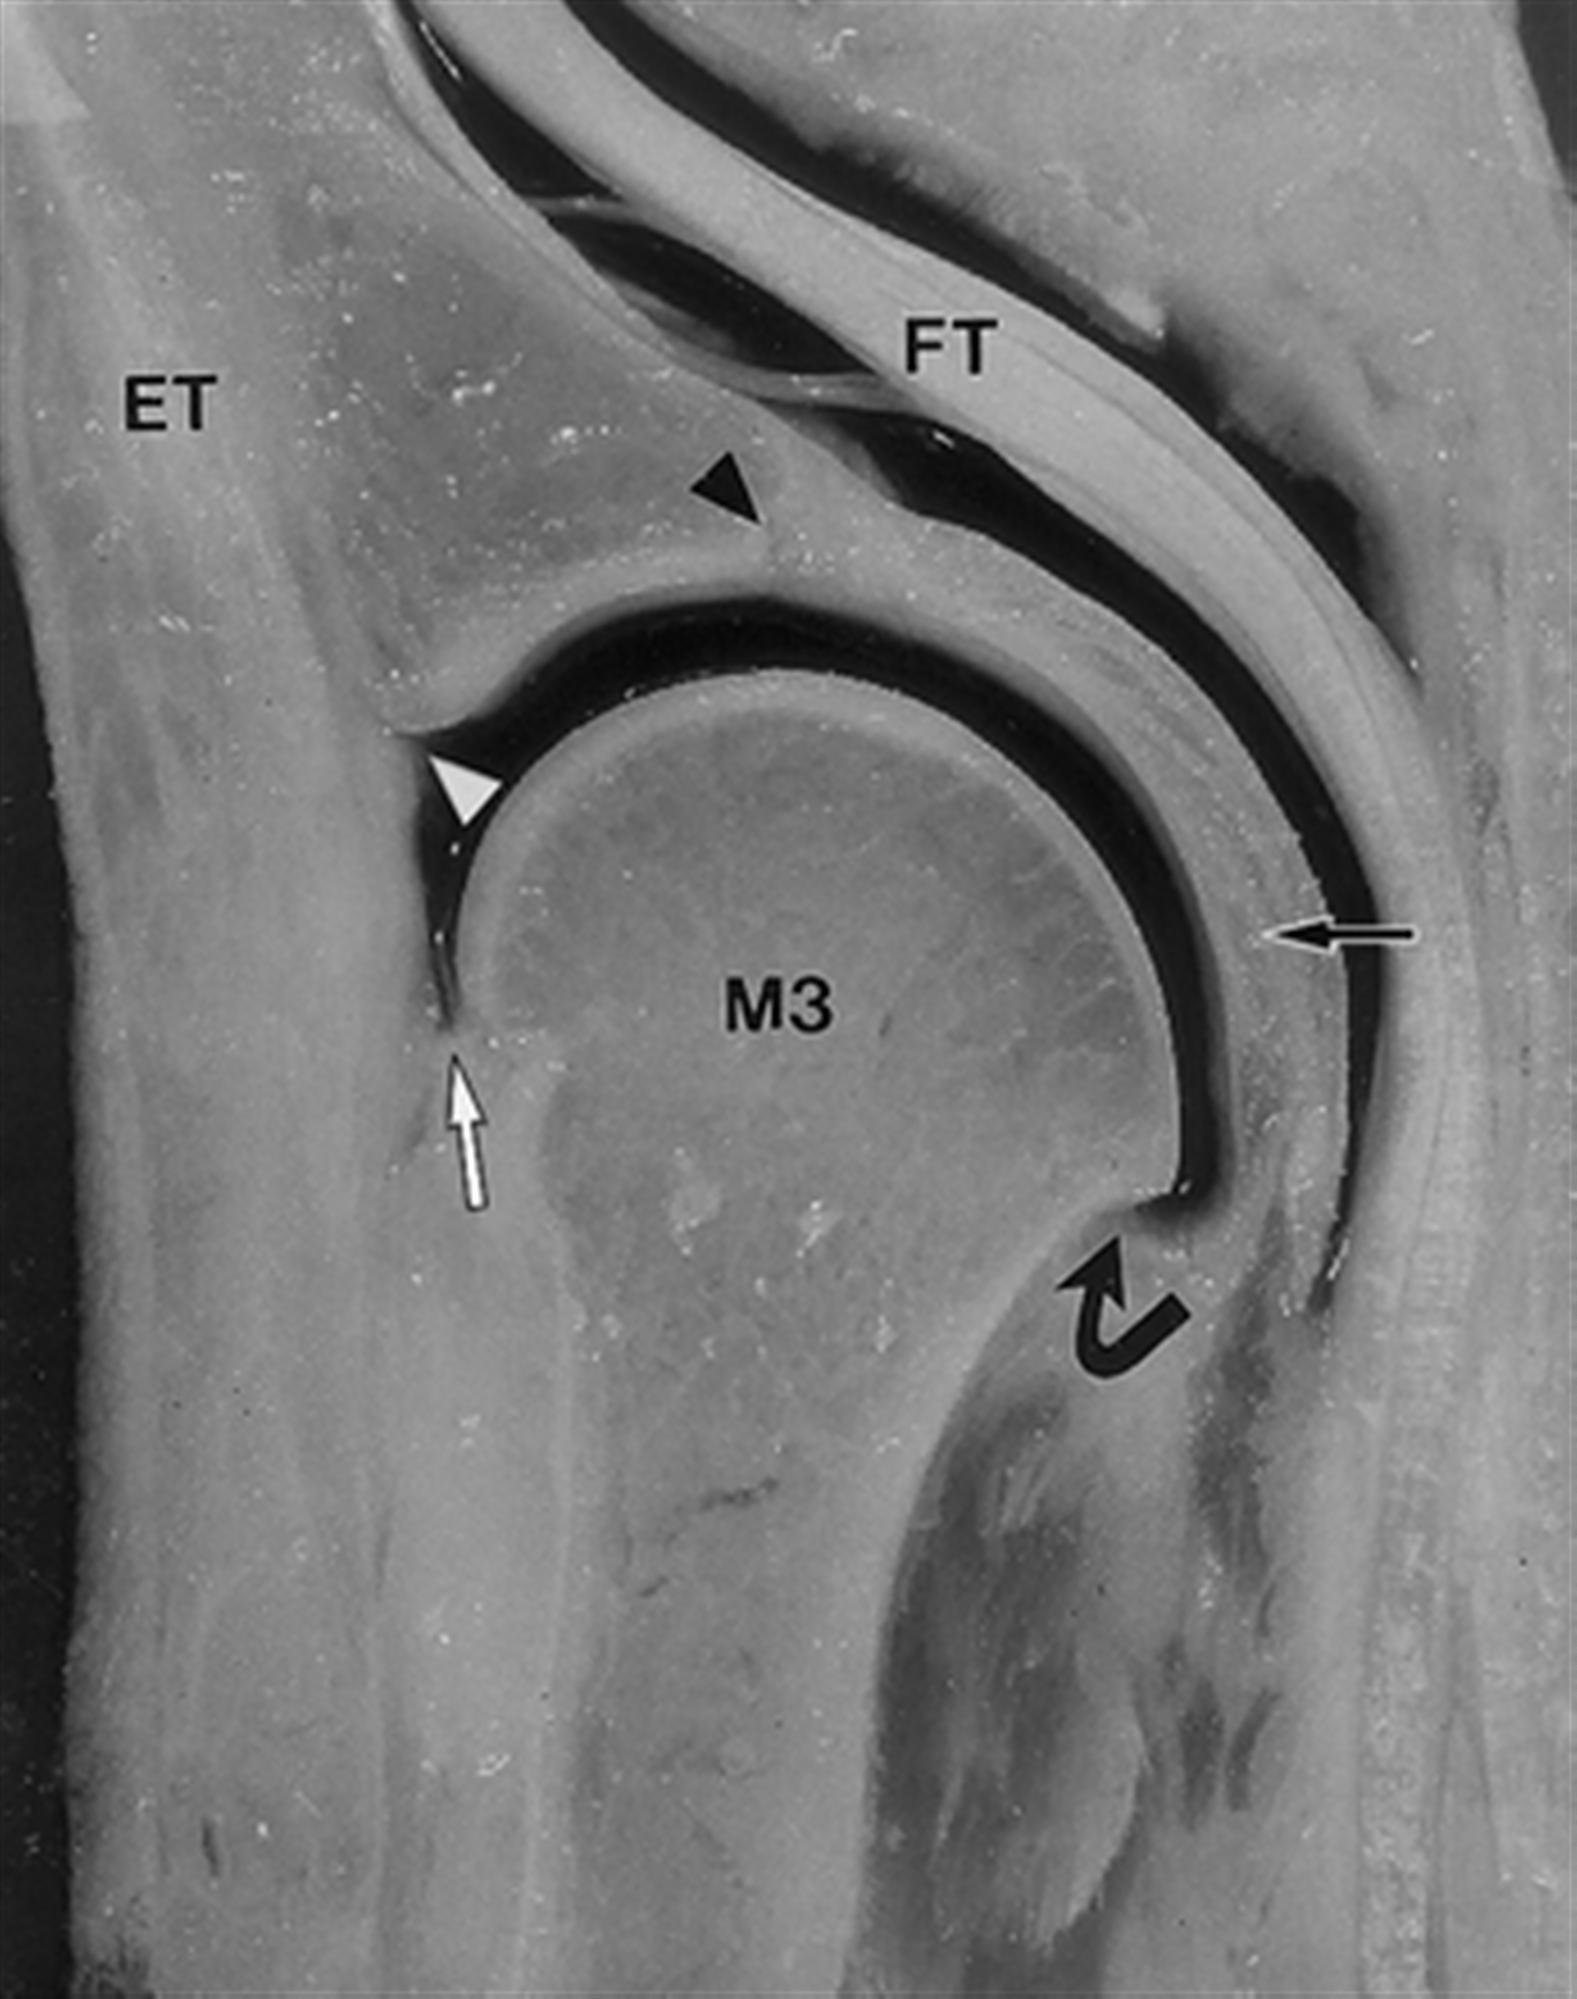 http://upload.orthobullets.com/topic/7016/images/plantar plate.jpg